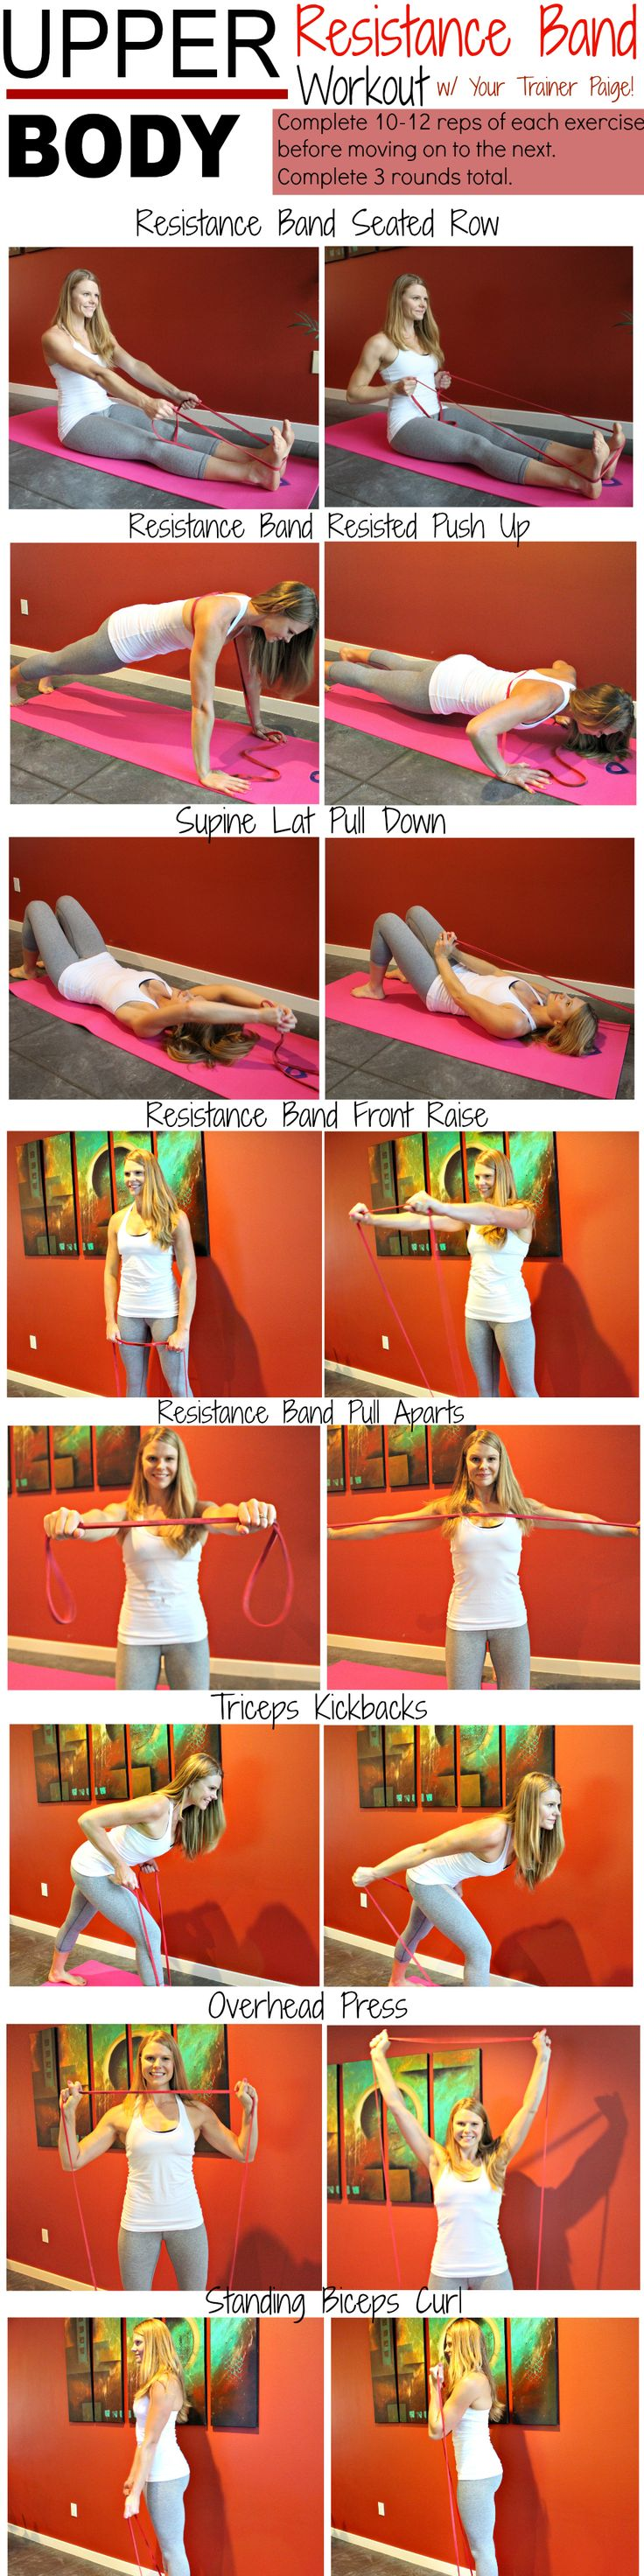 A great workout for the upper body! All you need is one resistance band and a little time in your living room!